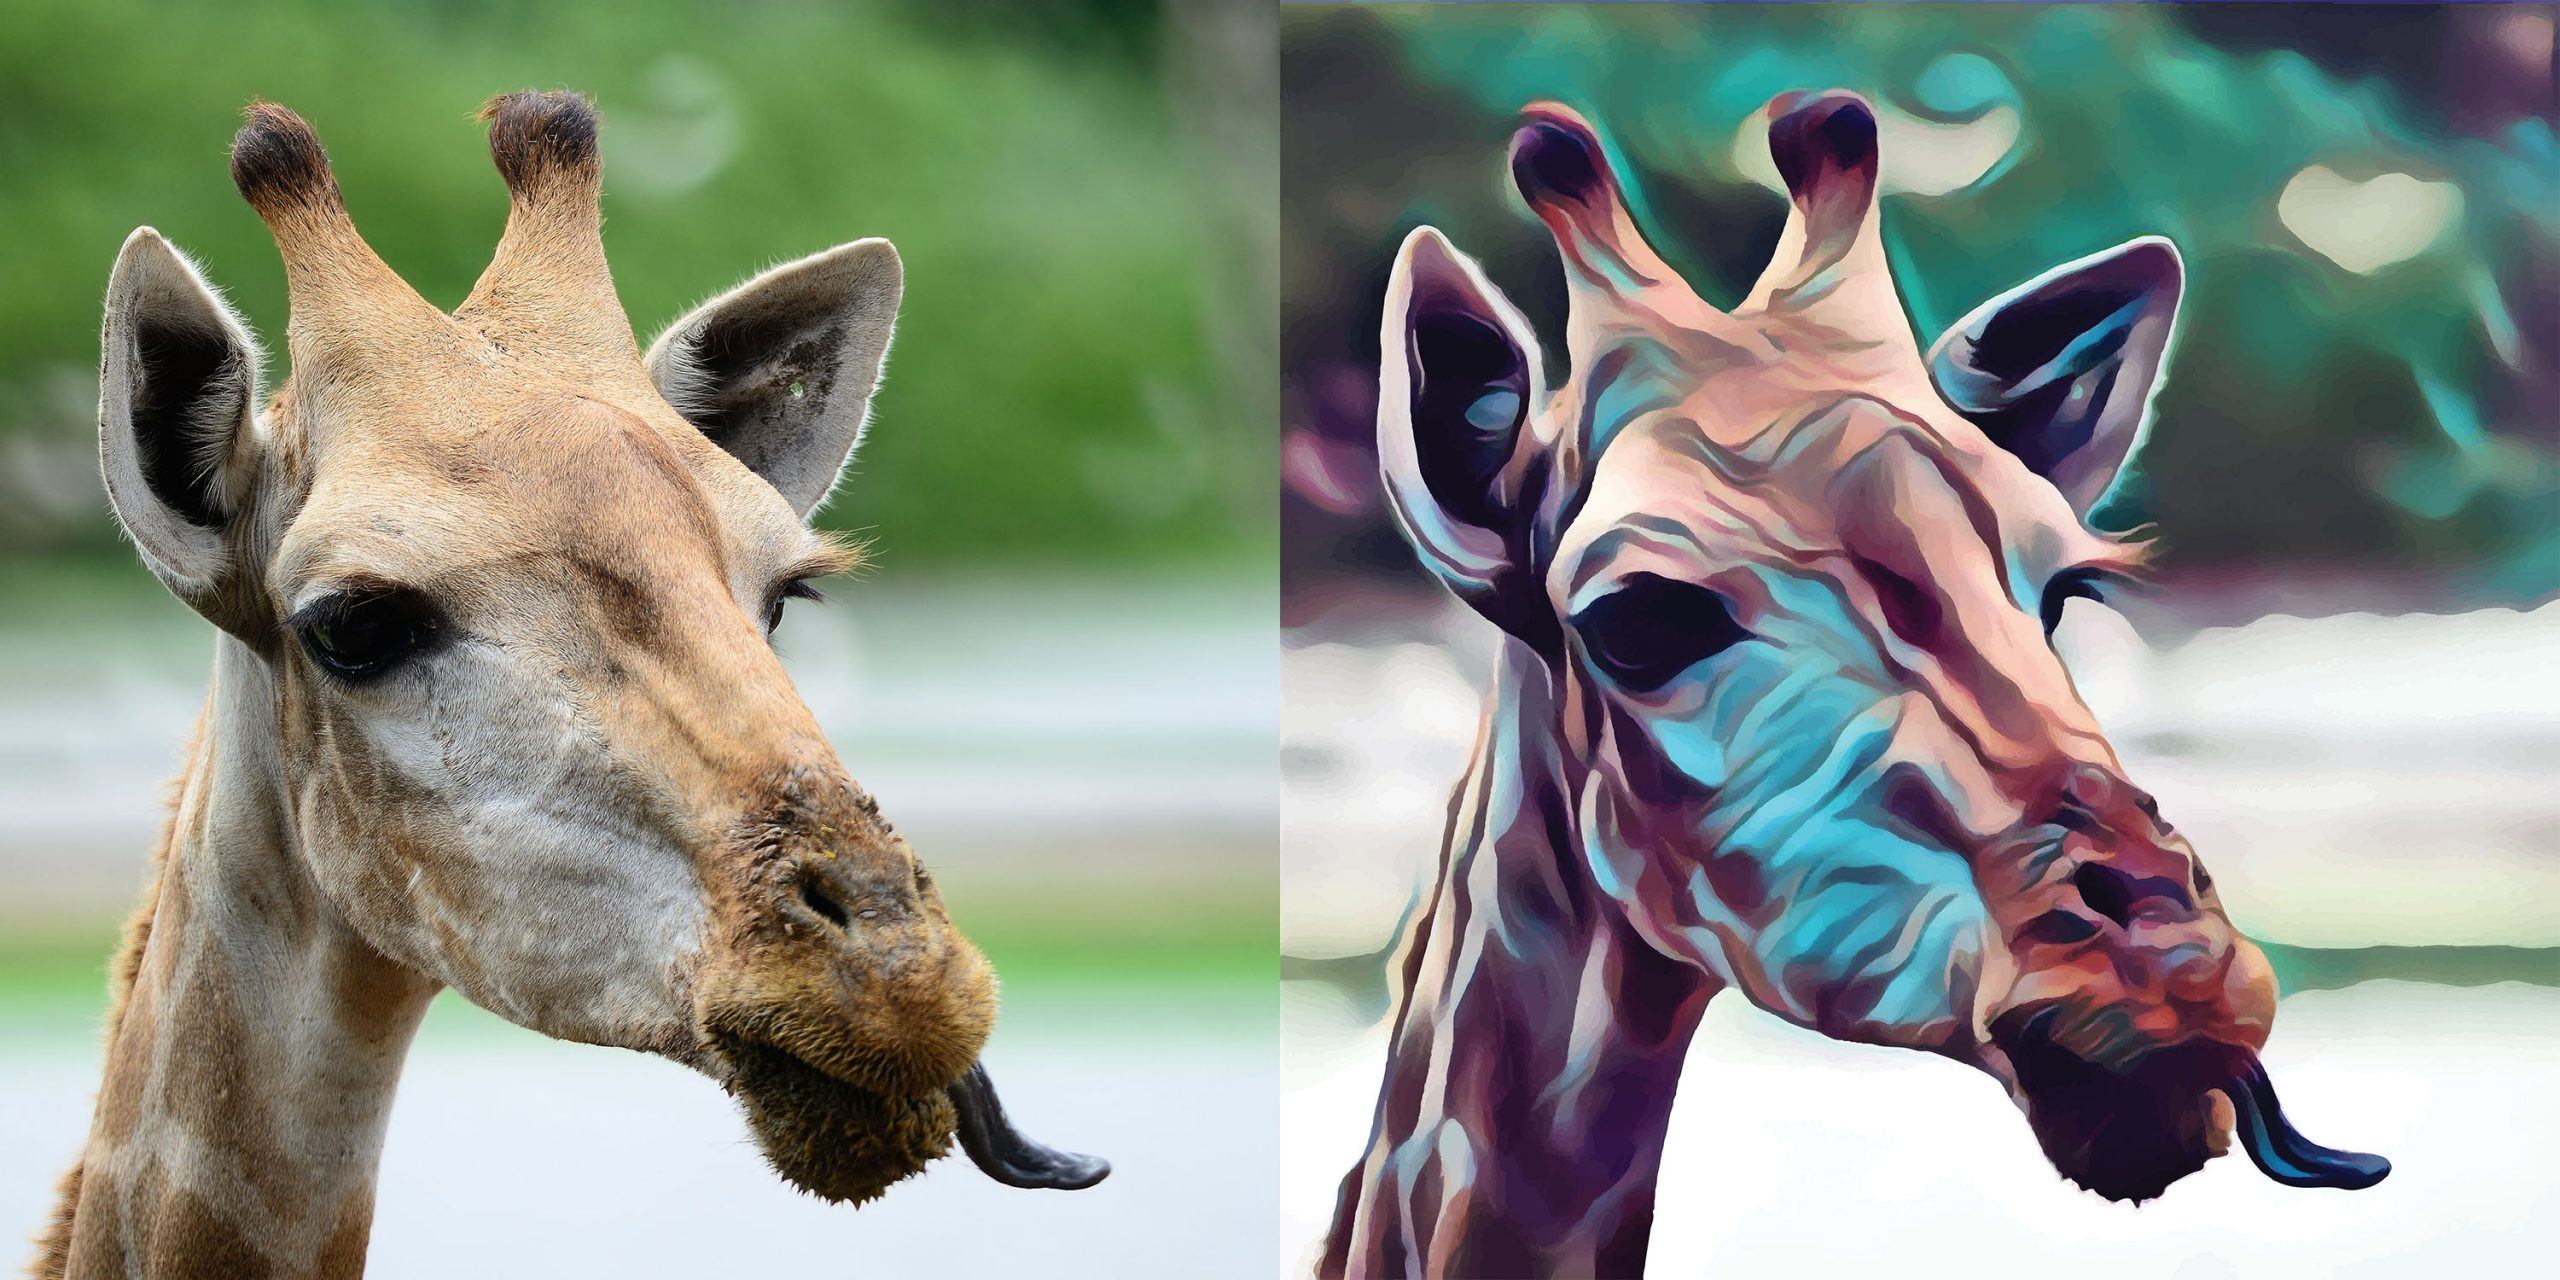 Before and after stylized image of a giraffe sticking its tongue out